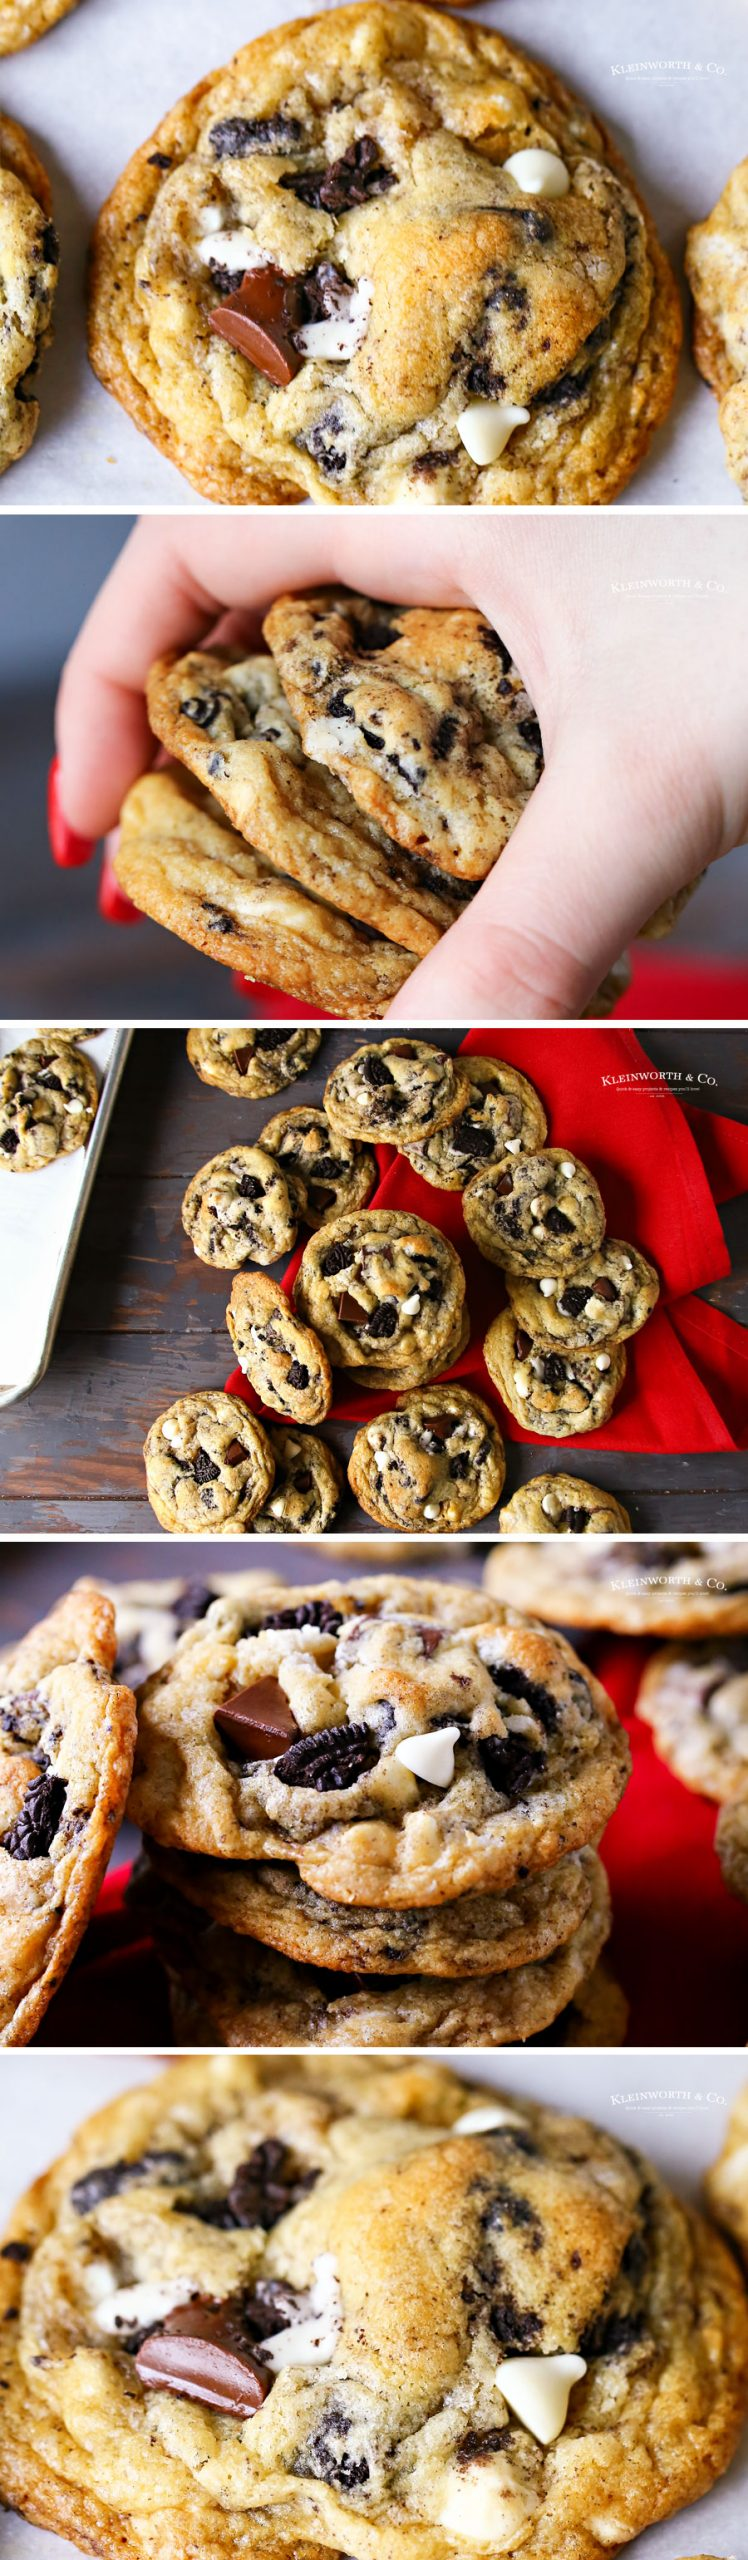 how to make Cookies and Cream Cookies